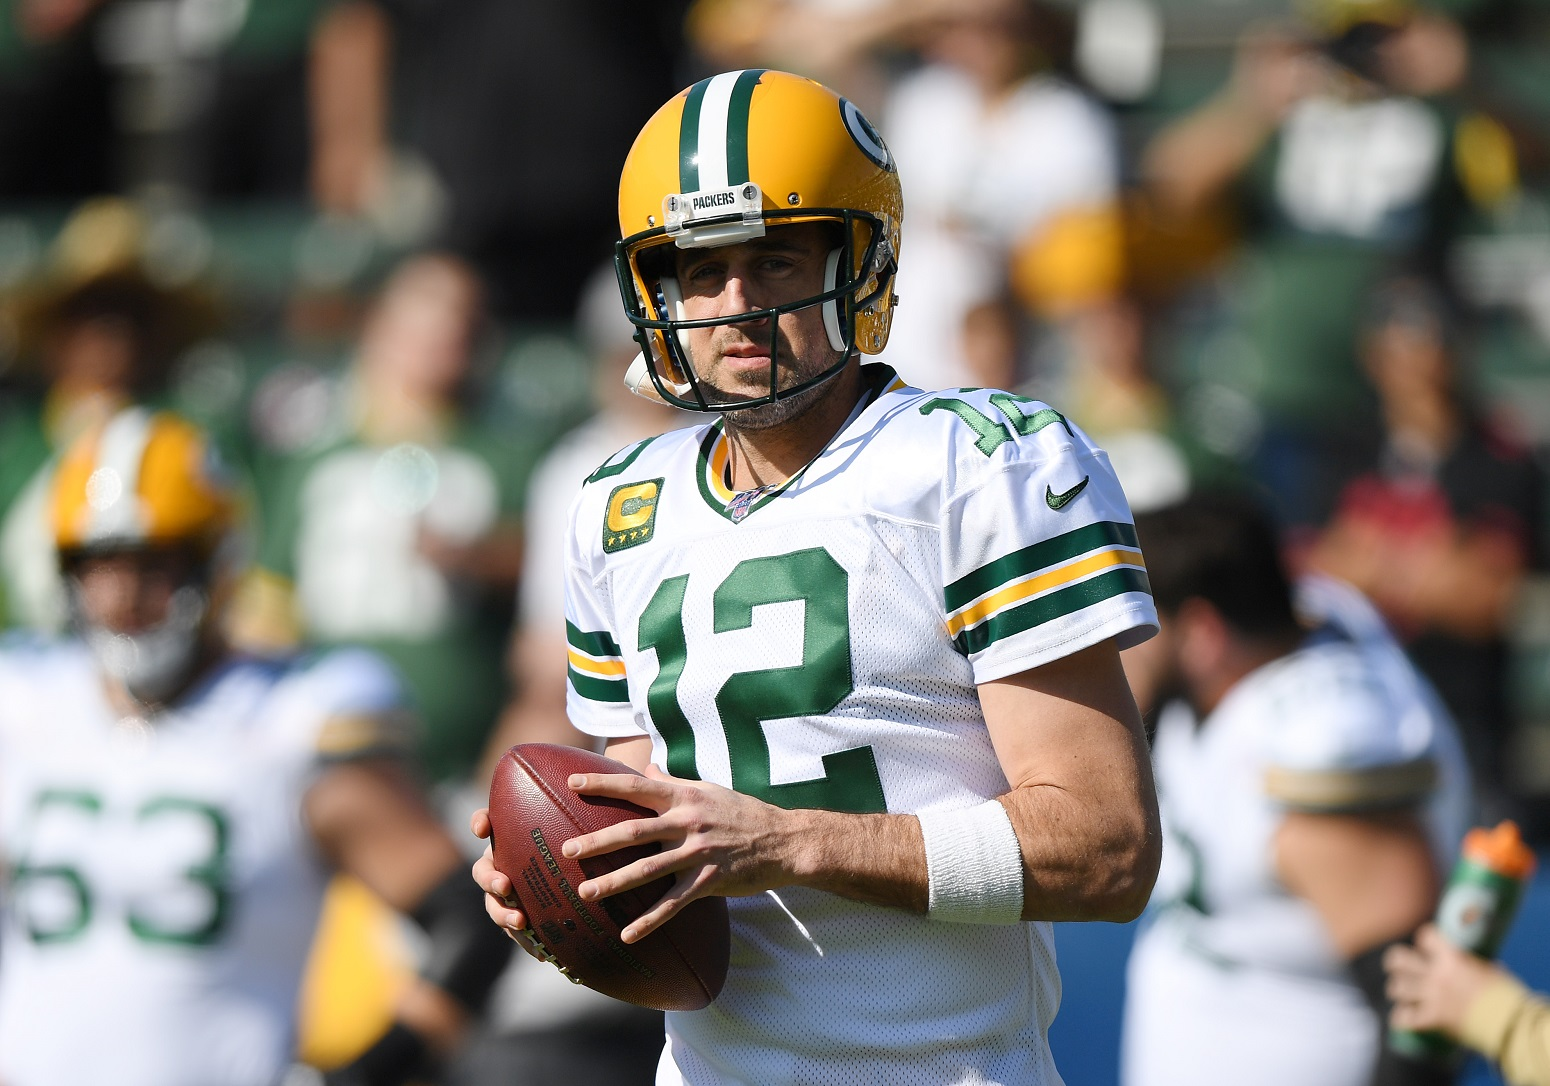 Aaron Rodgers Sends A Strong Message About Kneeling During The National Anthem